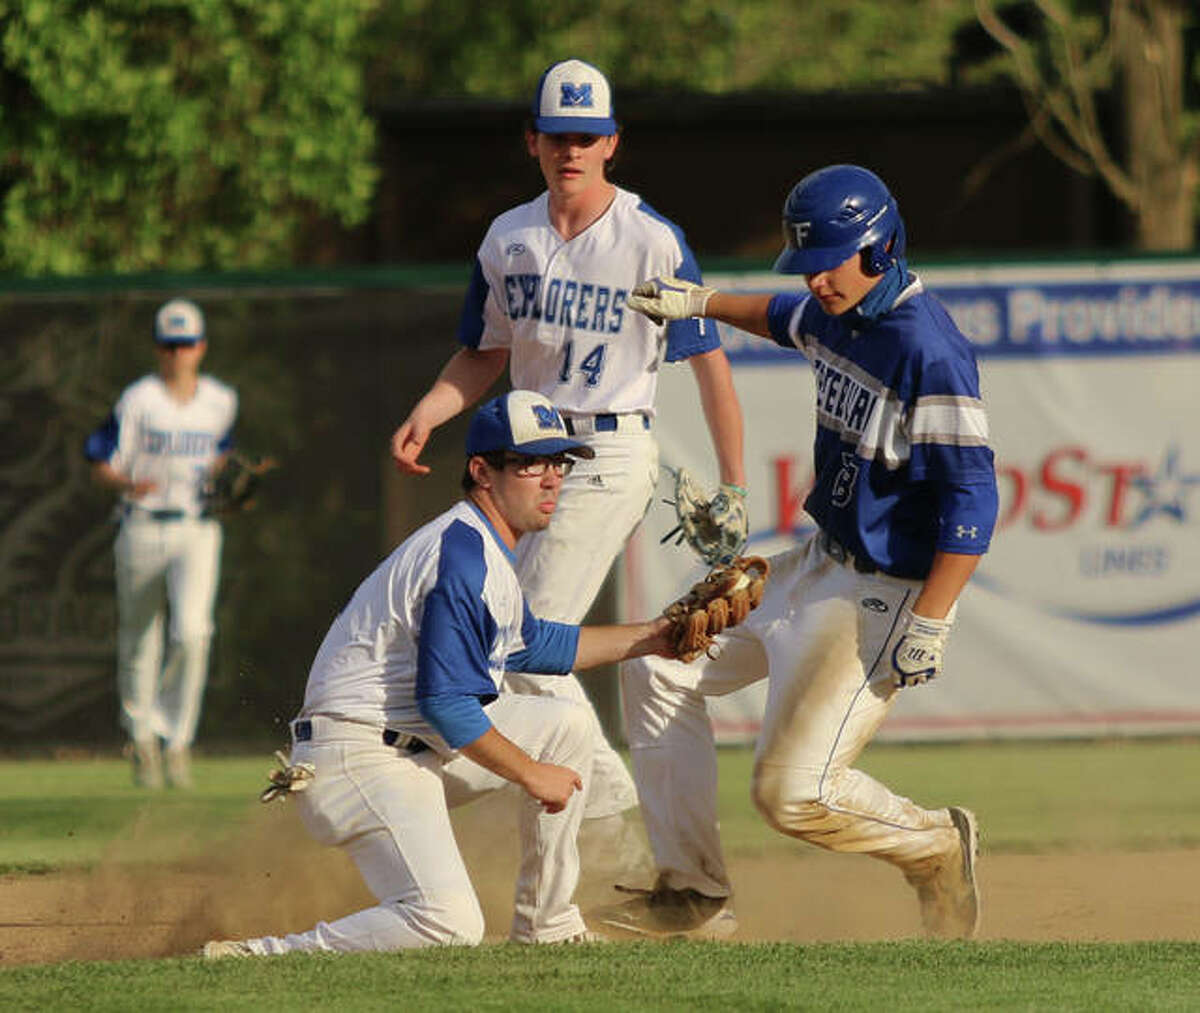 Marquette Catholic shortstop Braden Coles (left) looks to the umpire after applying a tag too late to get Freeburg's Lane Otten at second base while the Explorers' Joey Gatermann (14) backs up the play in a May 7 game at Hopkins Field in Alton.